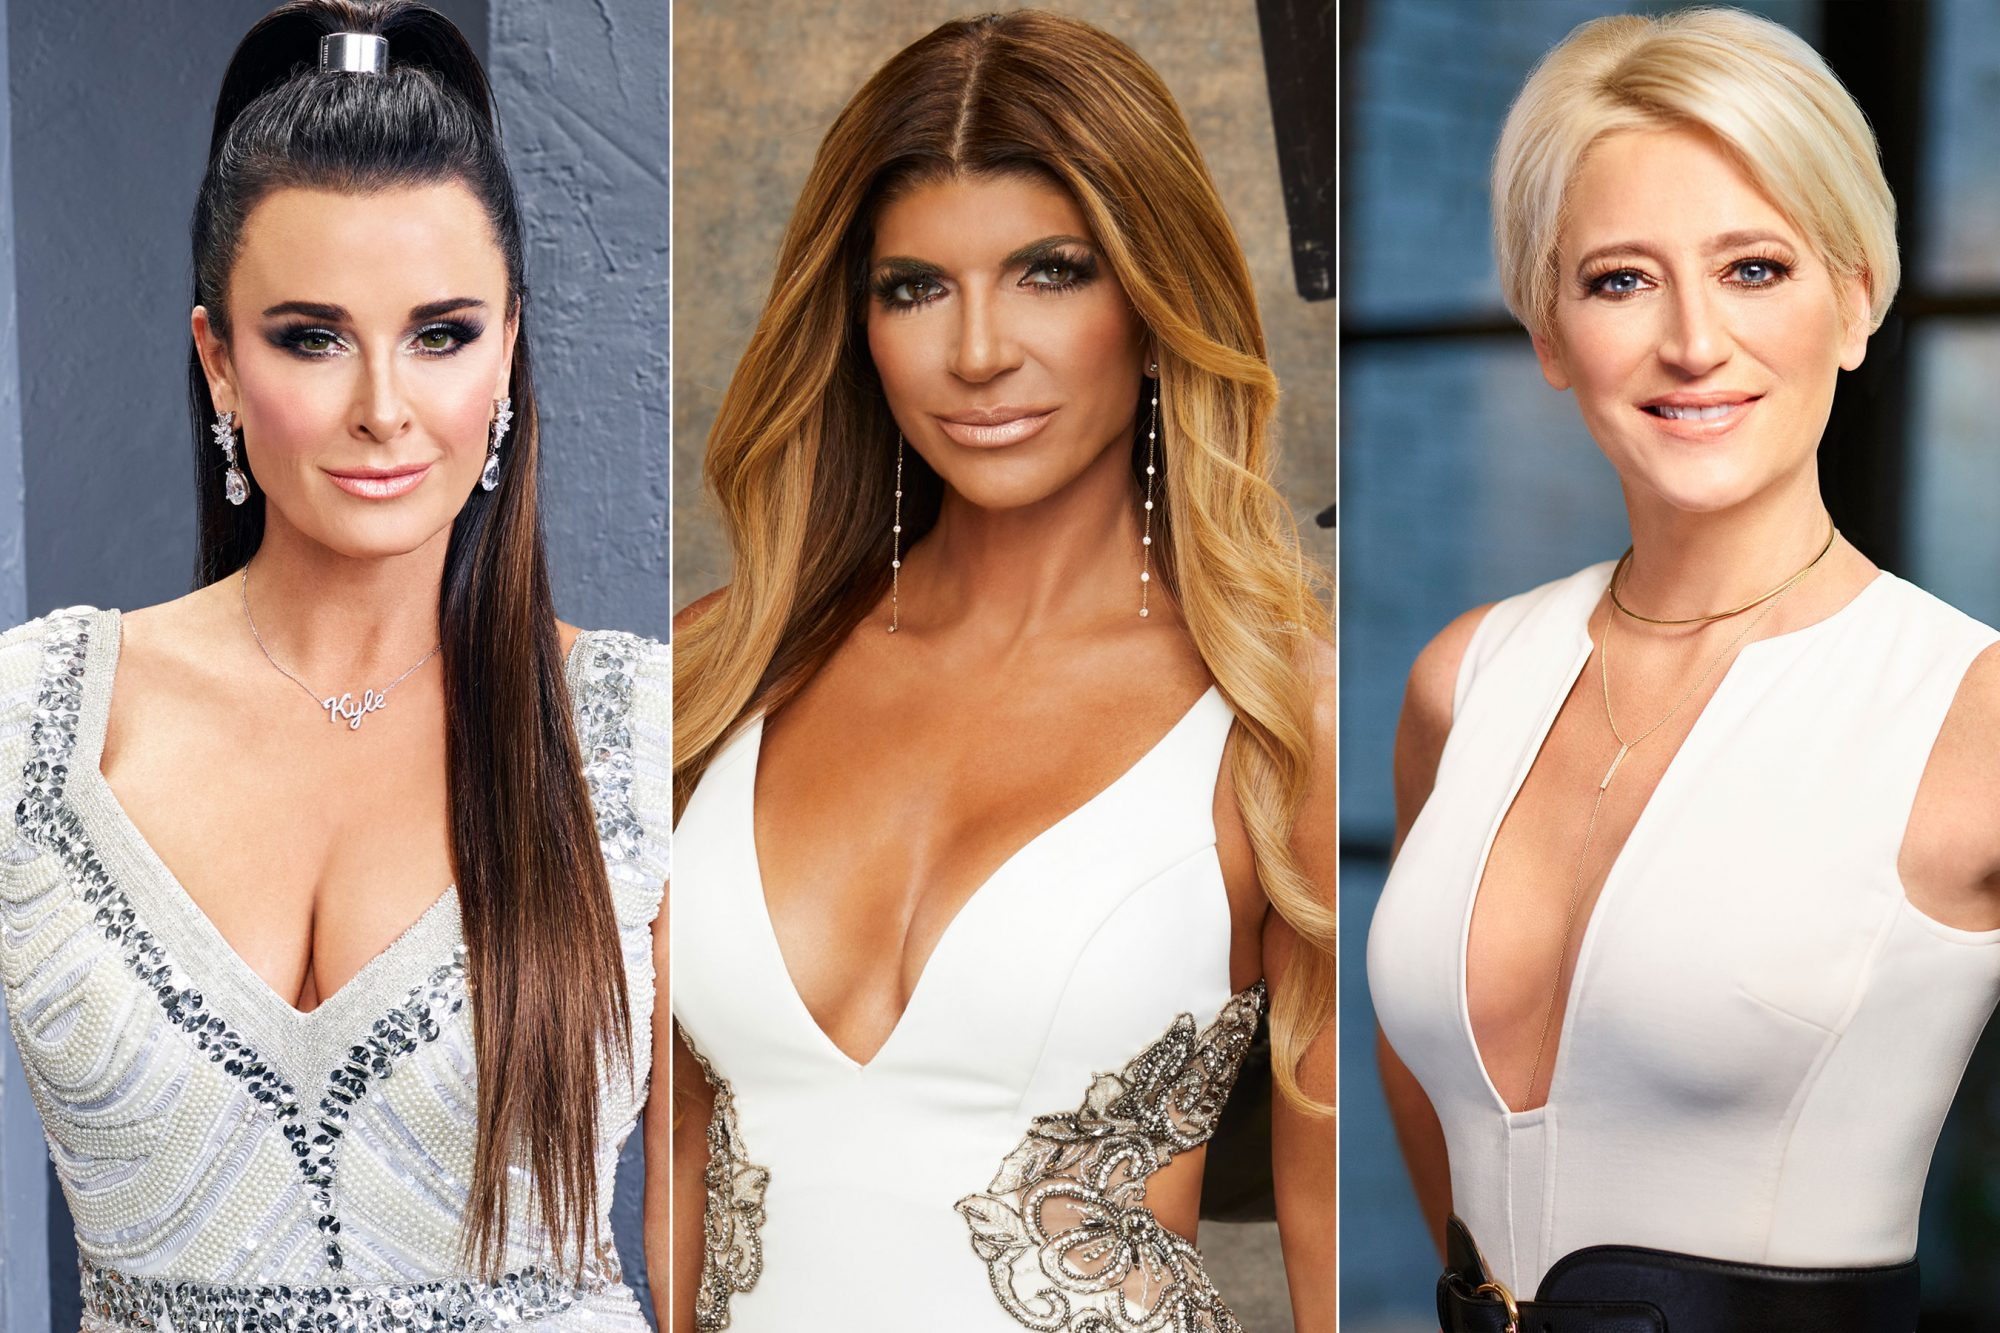 GALLERY: Real Housewives Merchandise